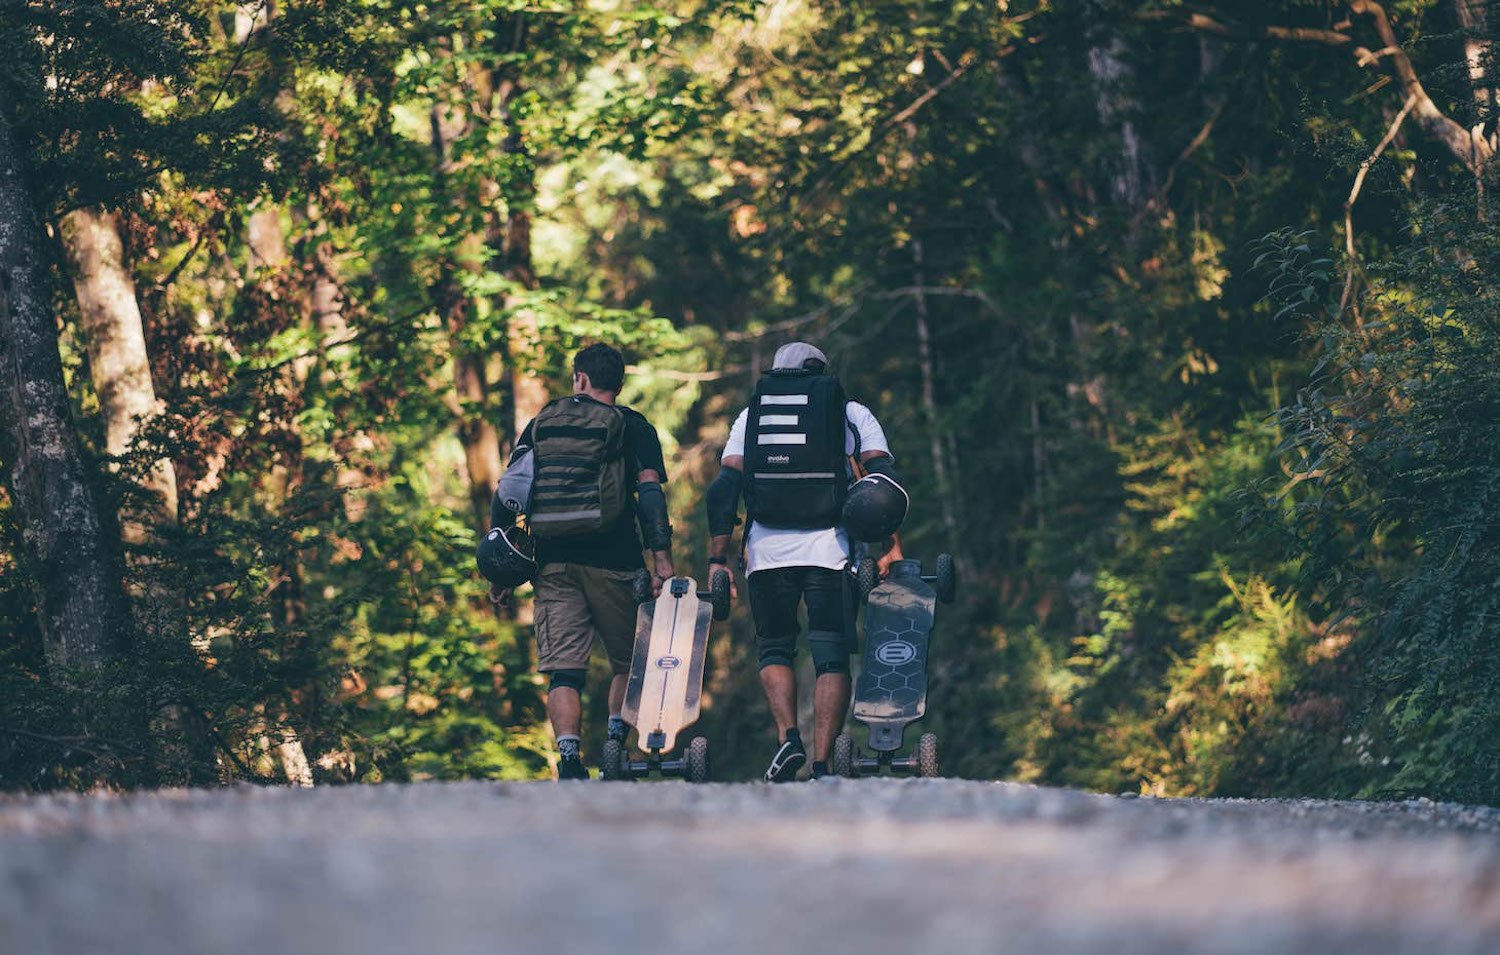 two people walking away with their electric longboards and Thousand helmets